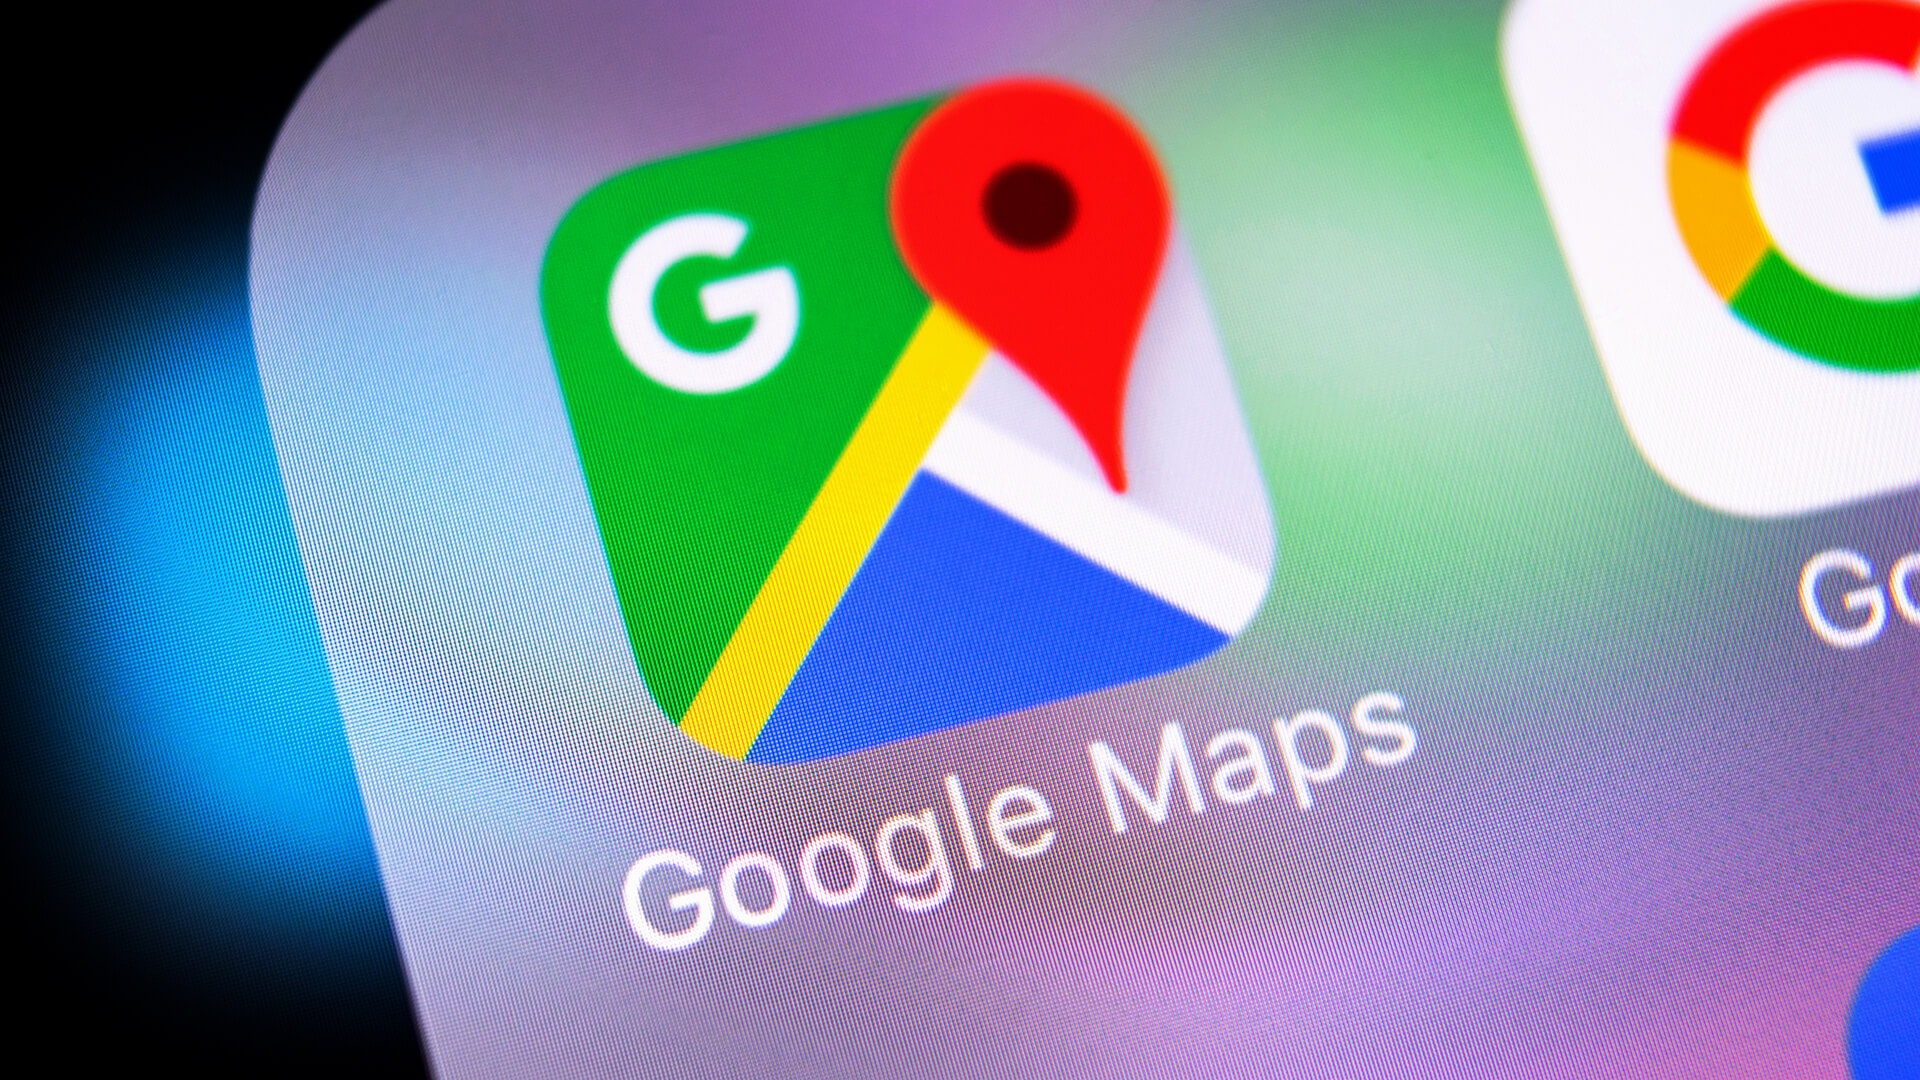 PPC - Google adds more discovery to Google Maps with 'community feed'